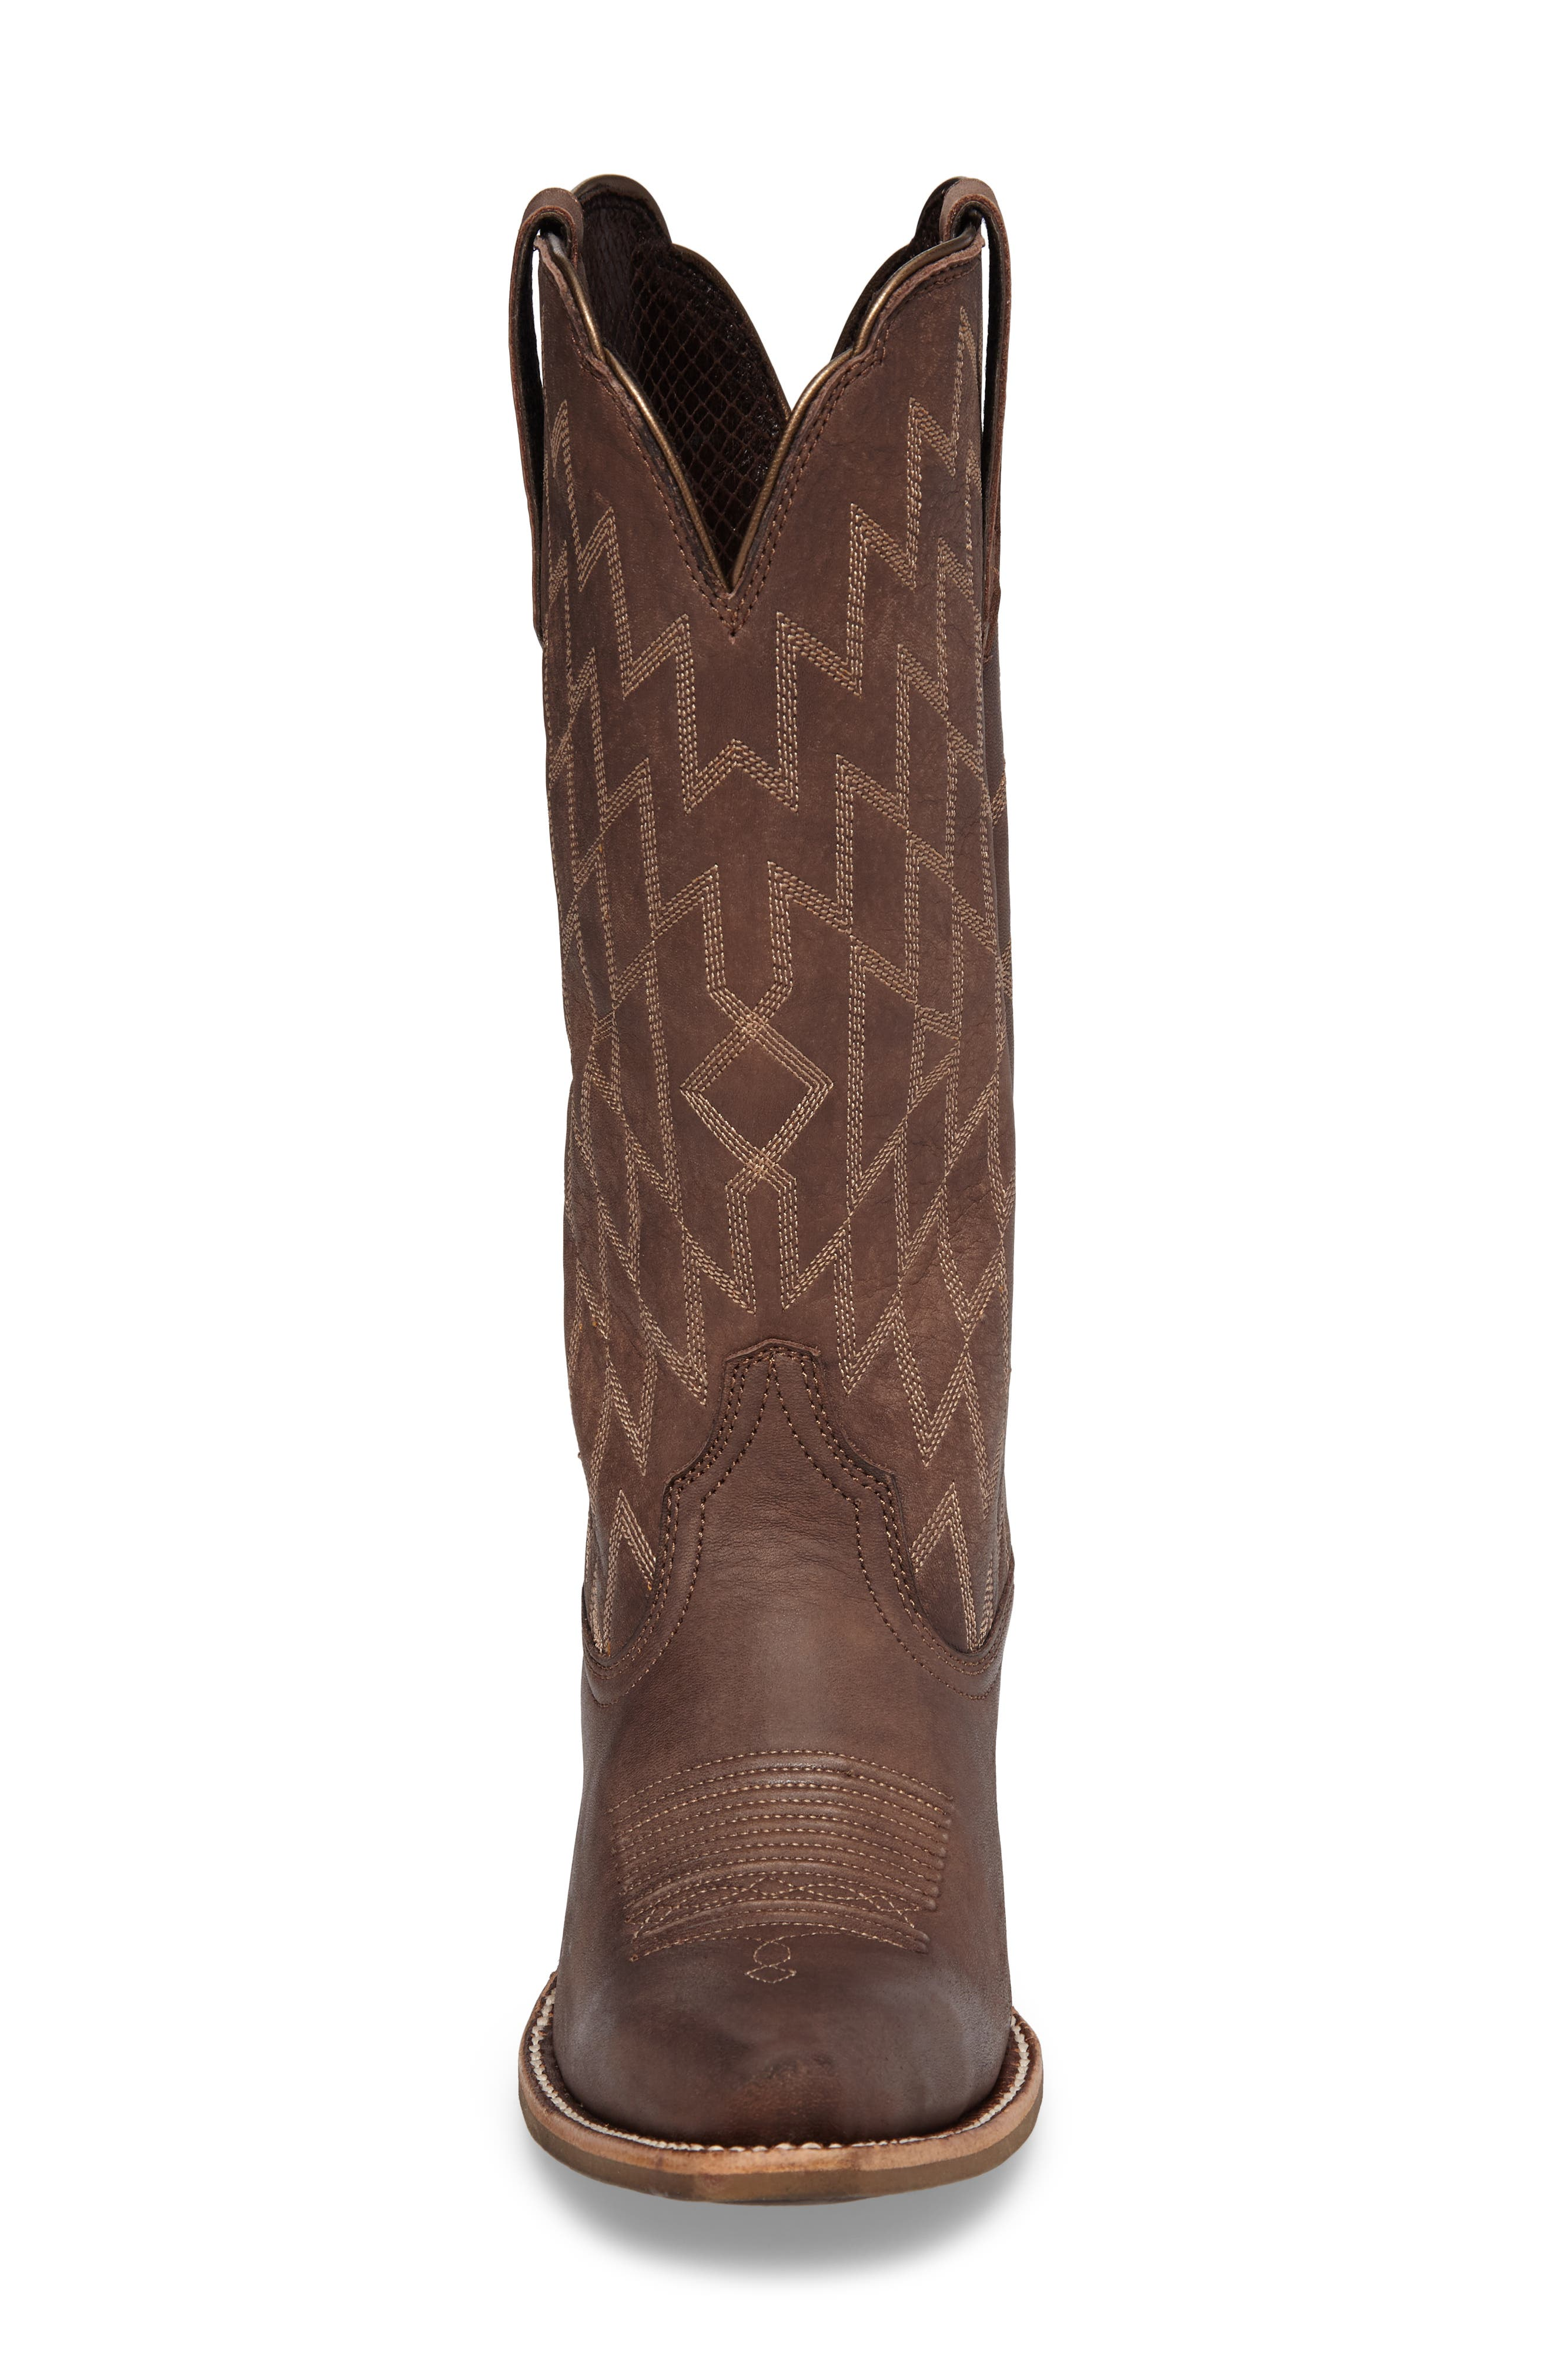 Heritage Southwestern X-Toe Boot,                             Alternate thumbnail 4, color,                             Tack Room Chocolate Leather